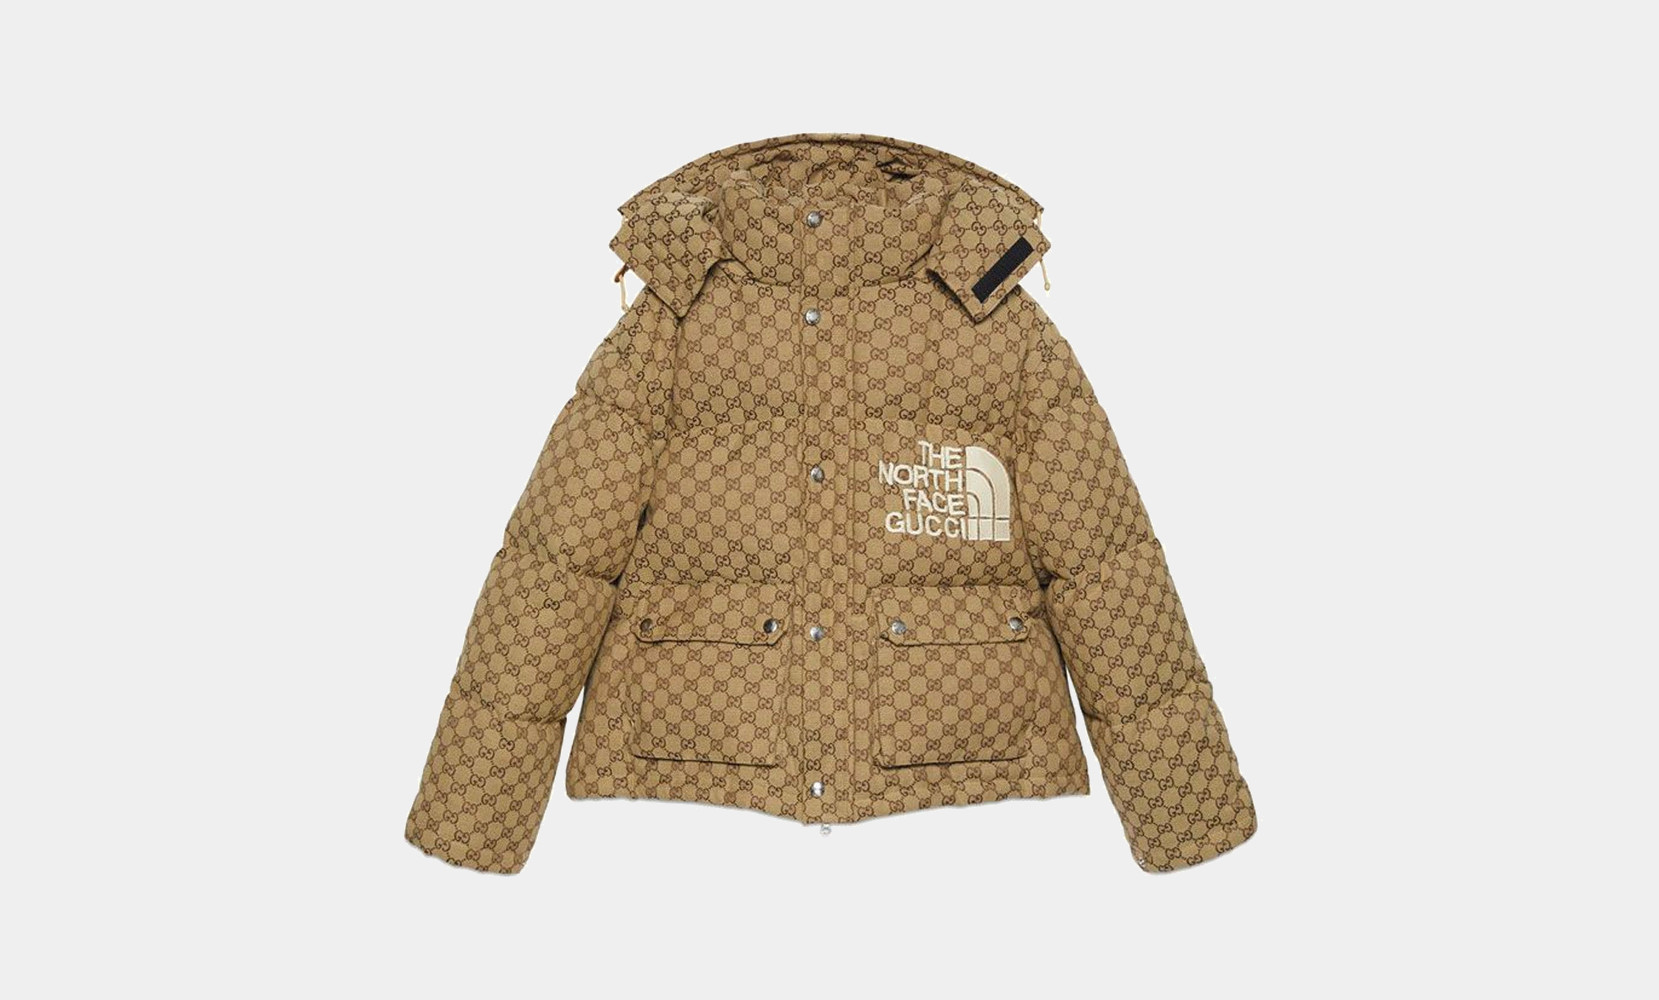 Gucci-Jacket-Retail Price